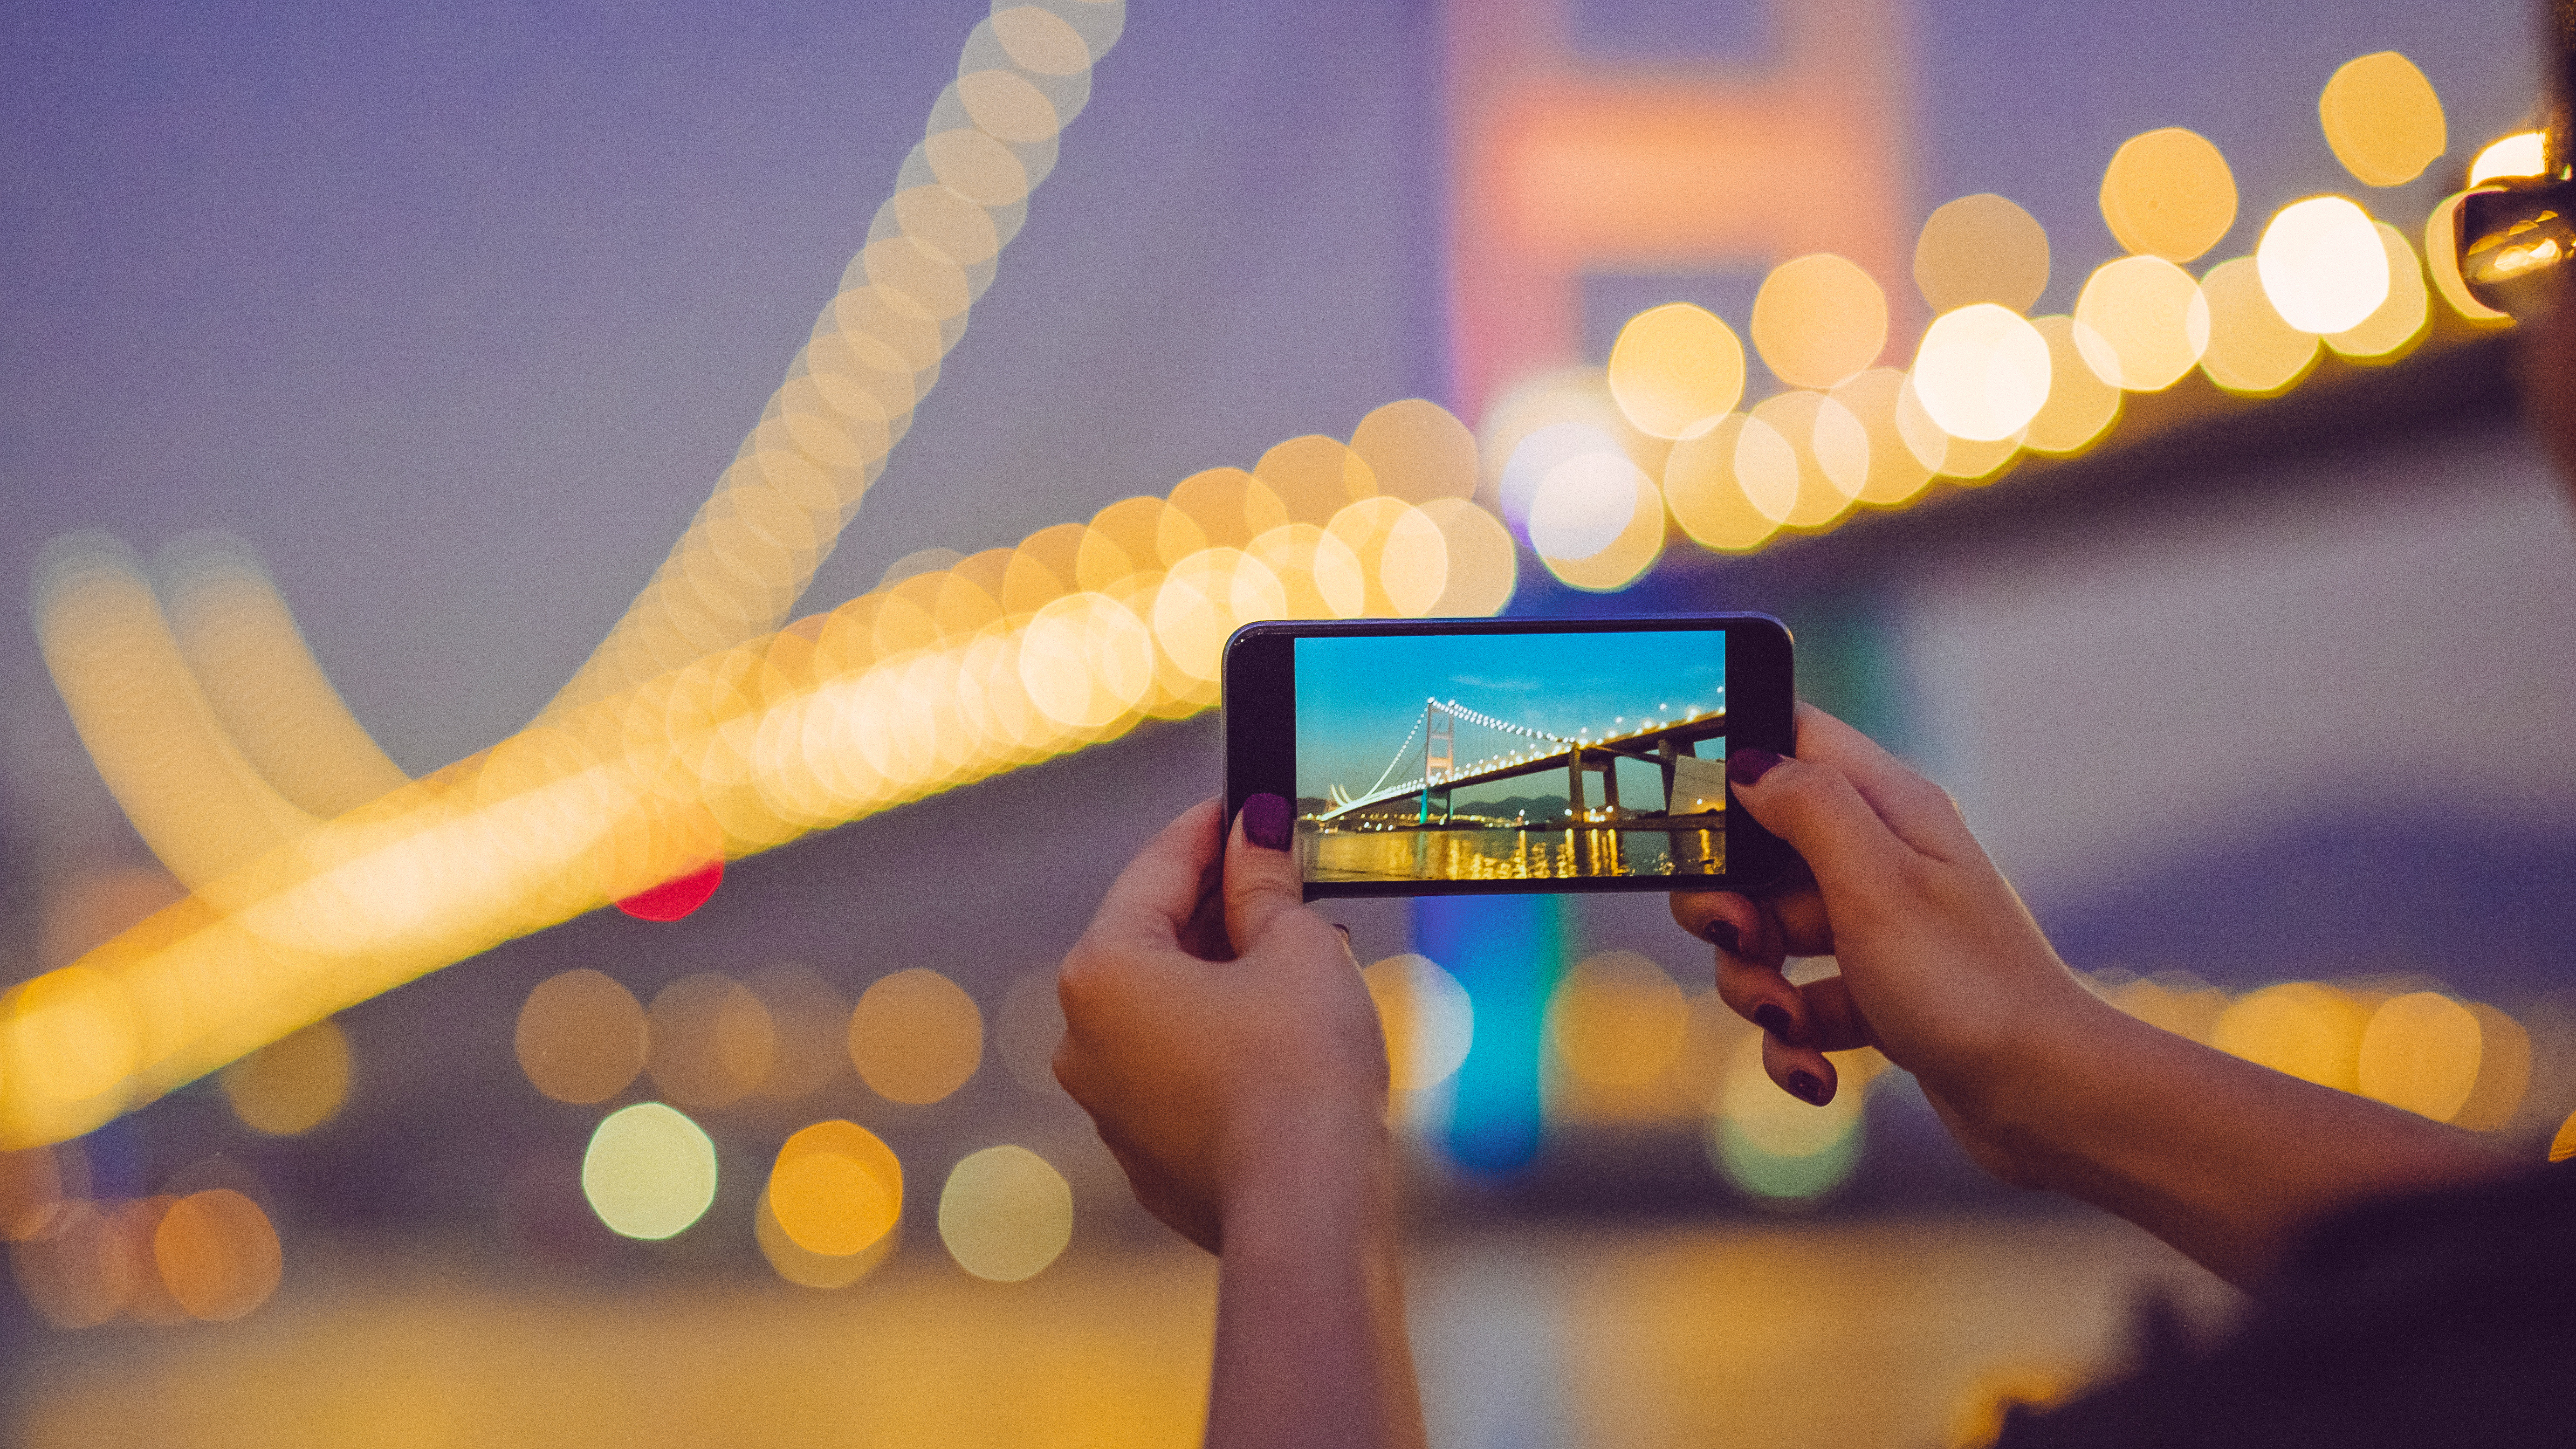 12 essential mobile photography tips   Digital Camera World